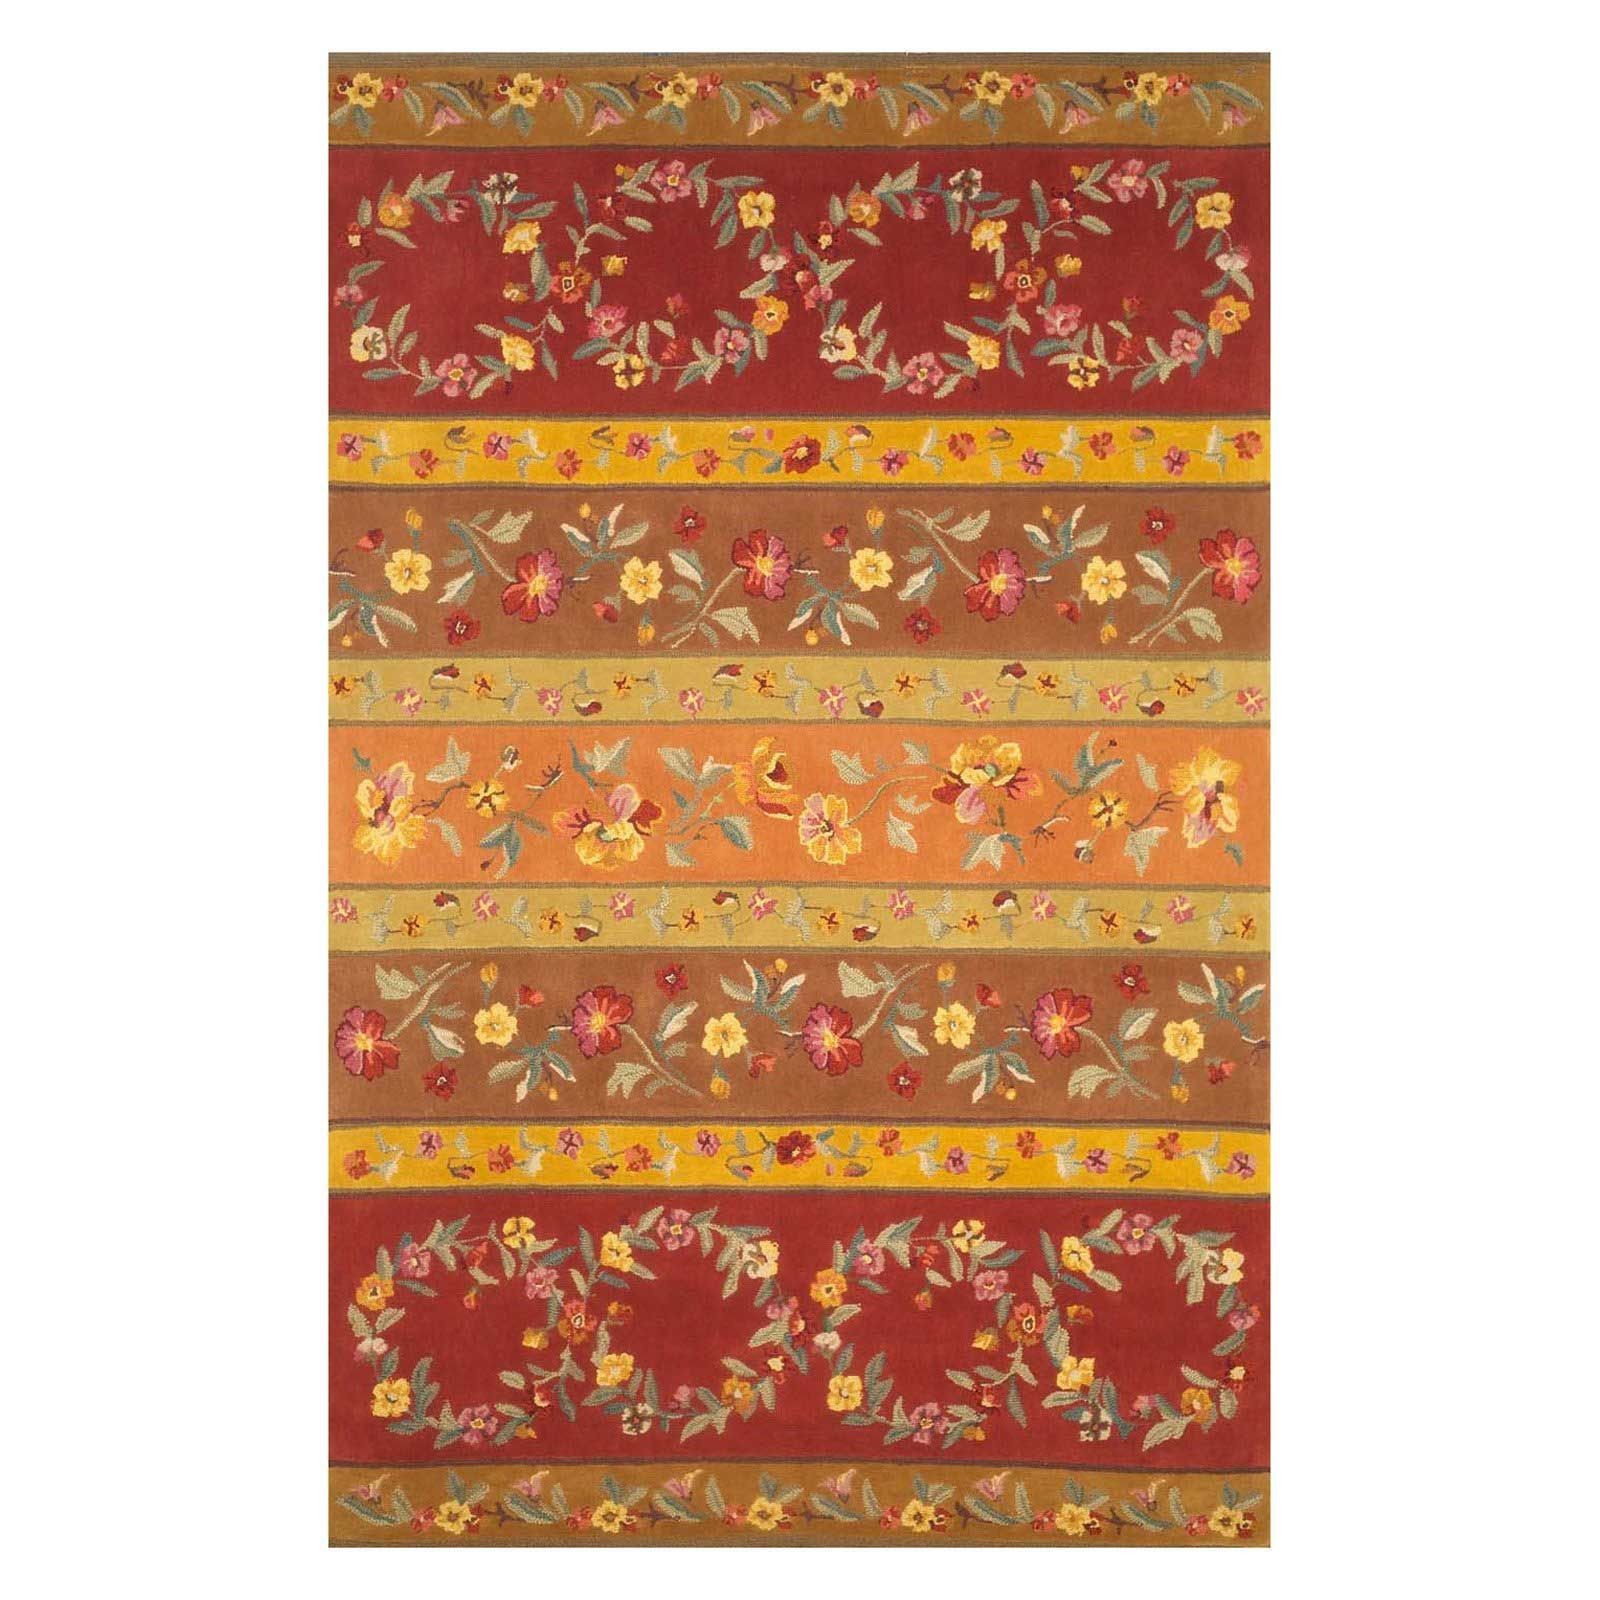 Tuscan Style Area Rugs For Decorating Your Floors In Elegant